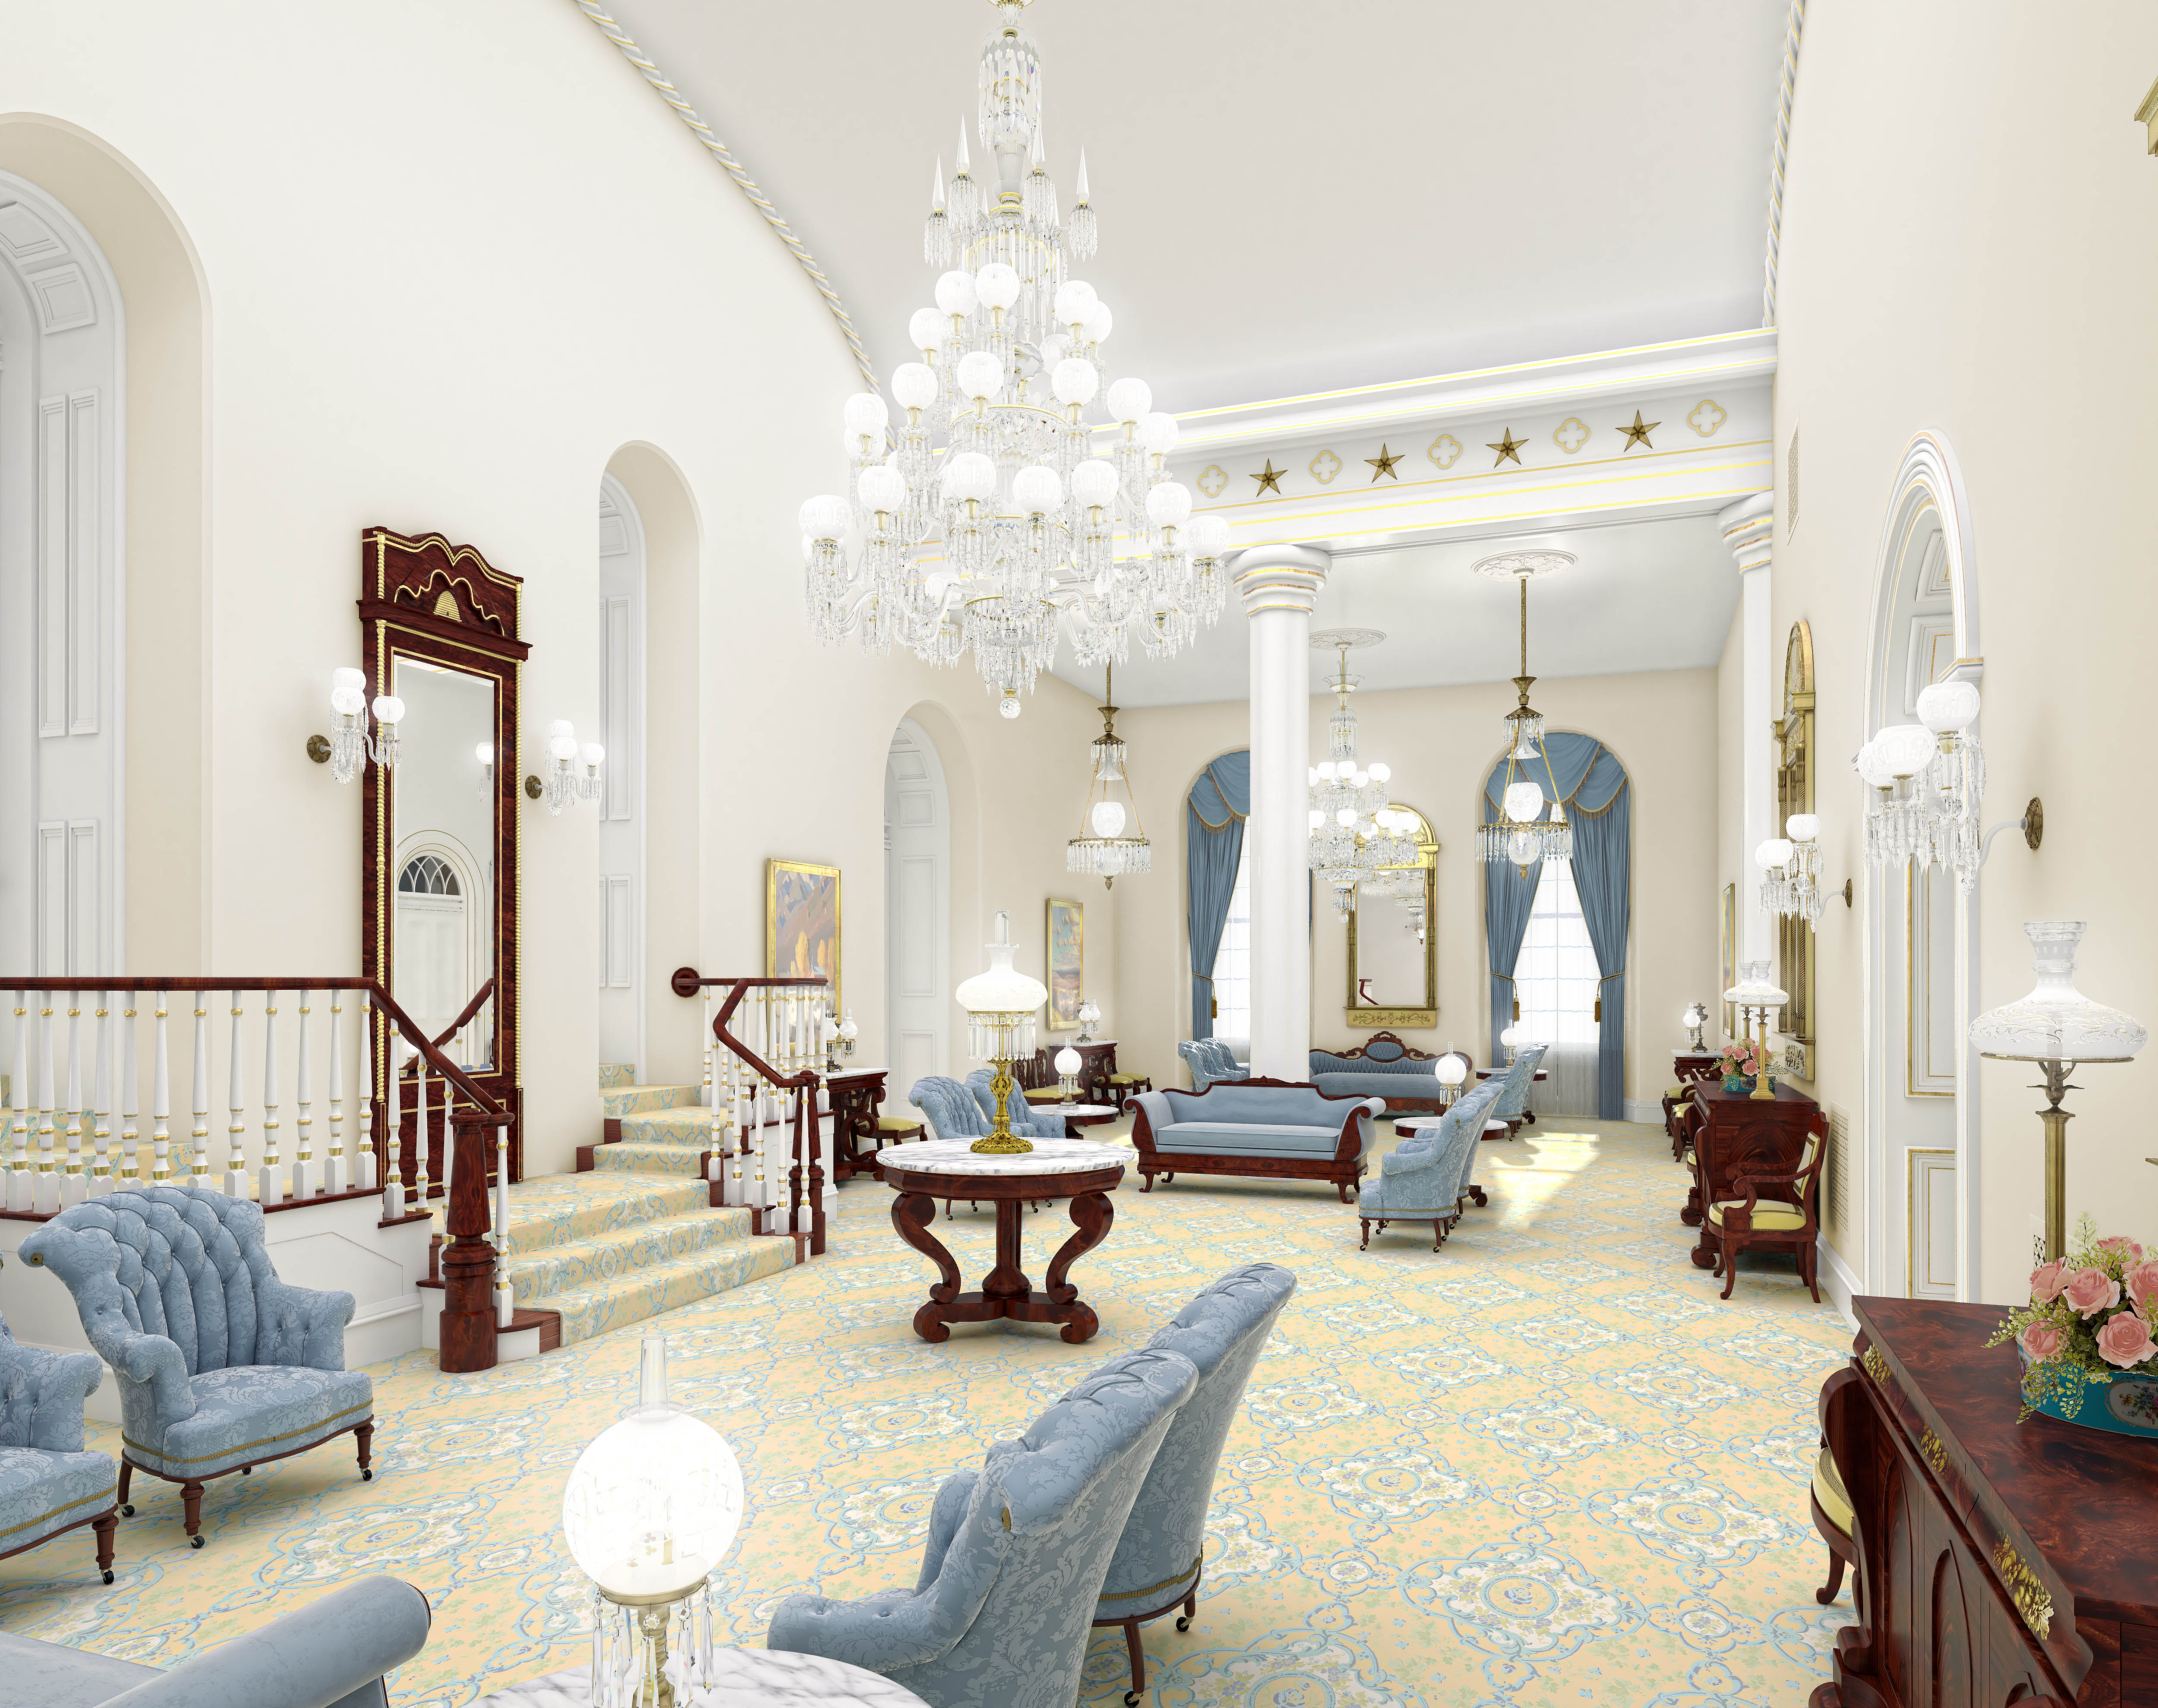 A rendering of the celestial room in the St. George Utah Temple. The temple will close Nov. 4 for extensive renovations.